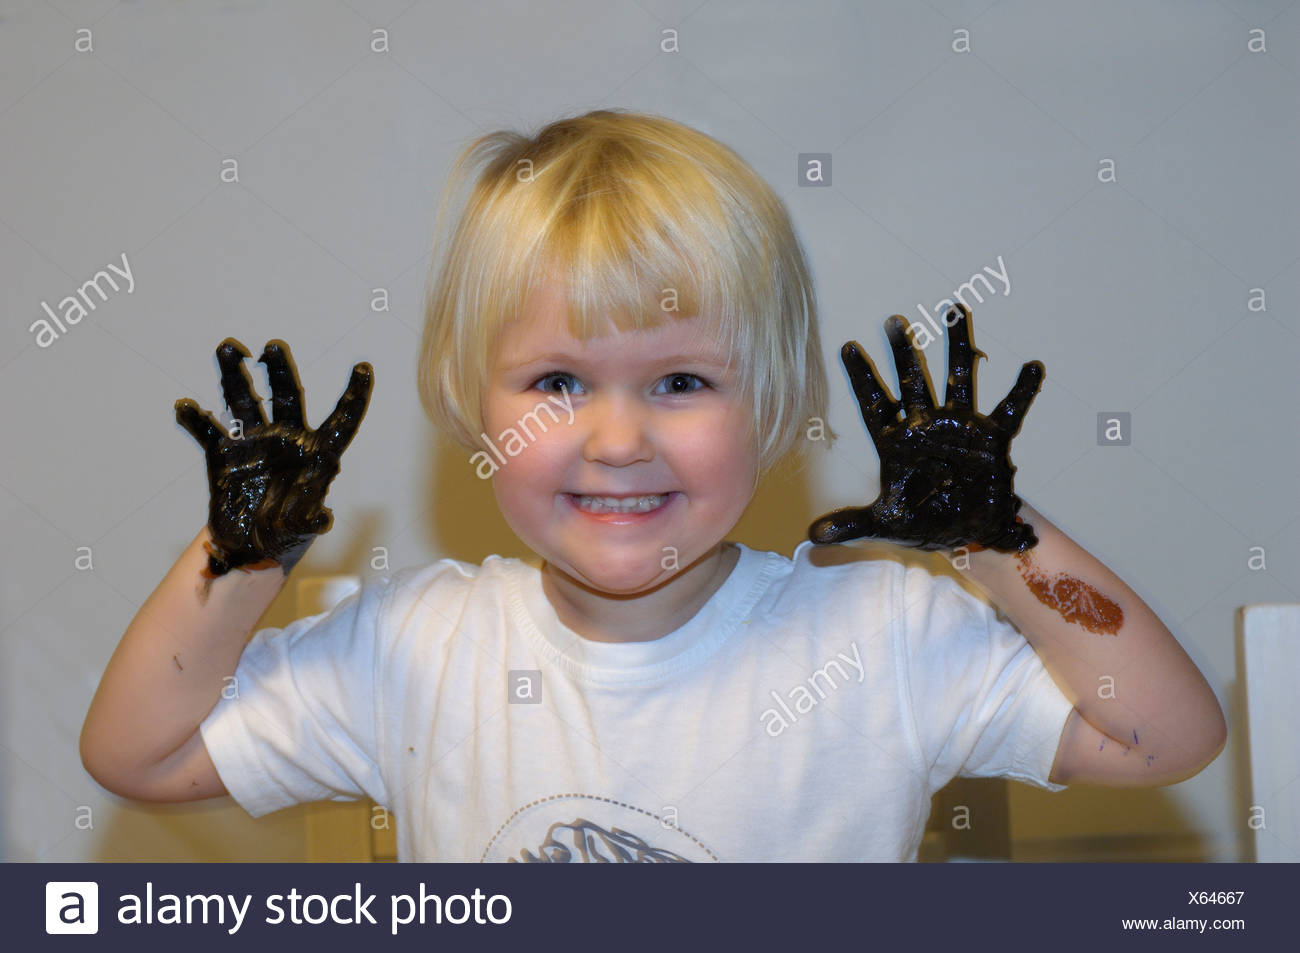 Close-up portrait of smiling girl avec la peinture noire sur ses mains Photo Stock